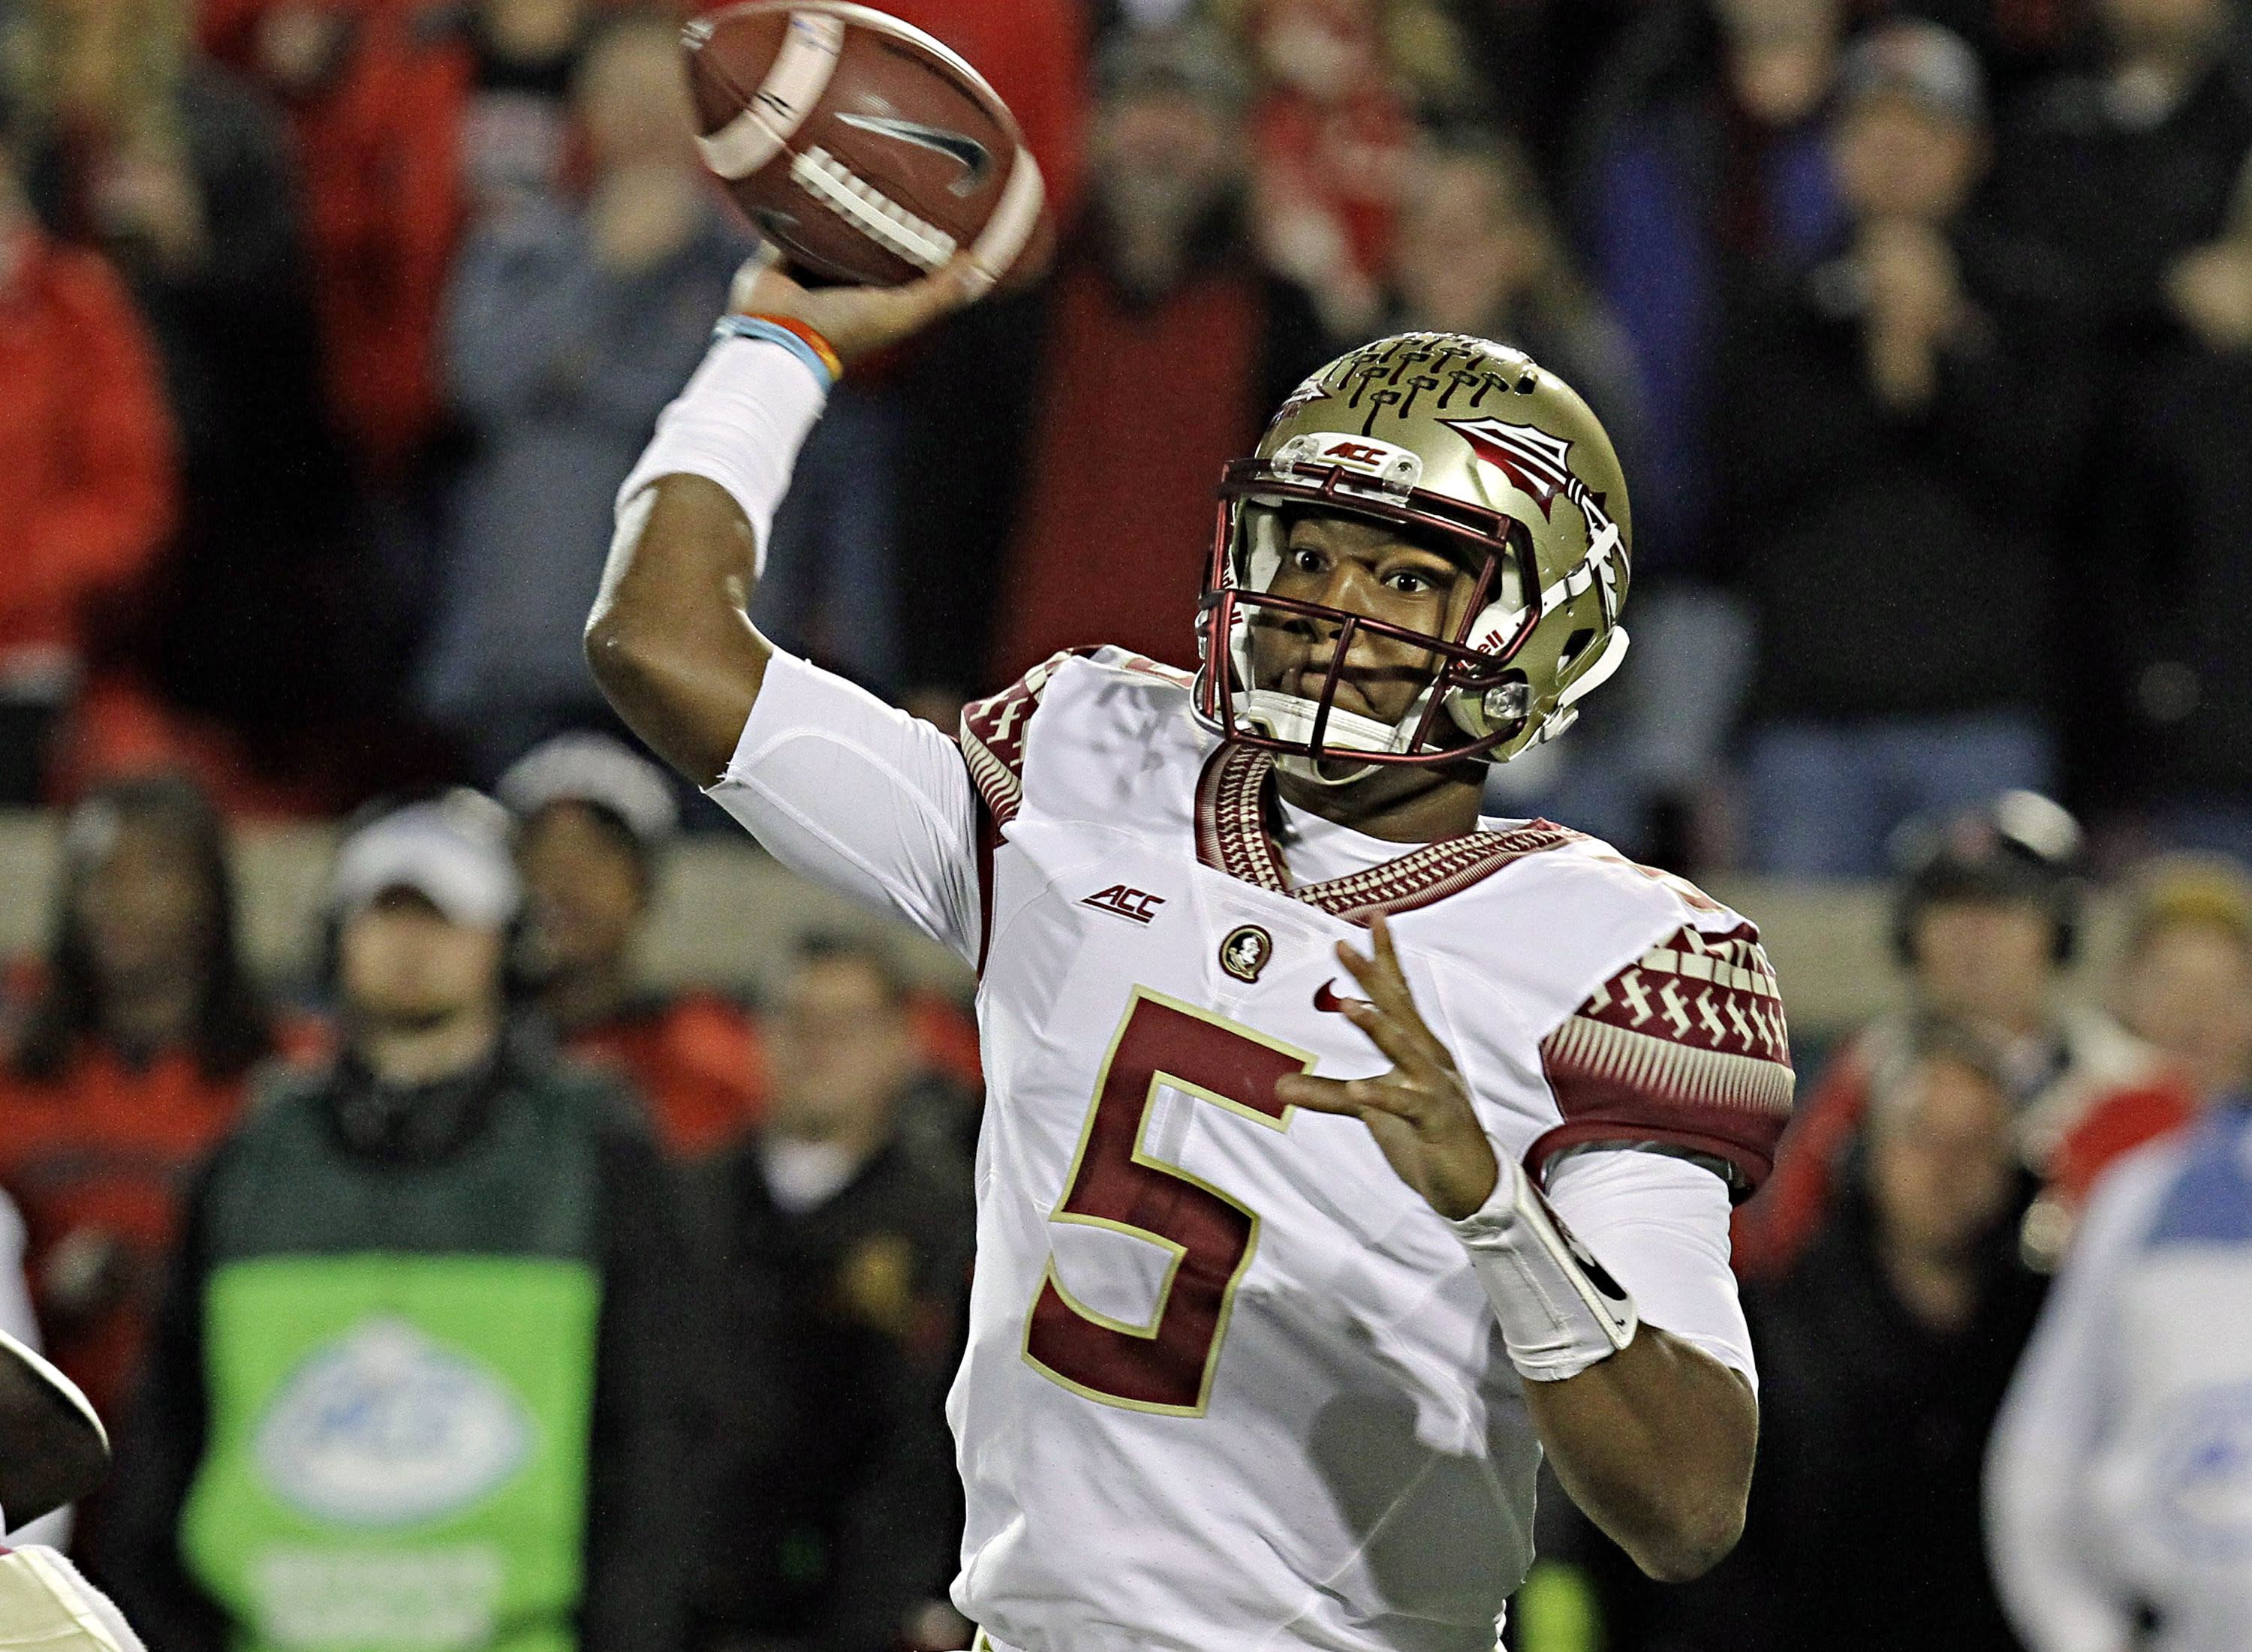 Lawyer says 'fix was in' when Winston cleared by FSU hearing